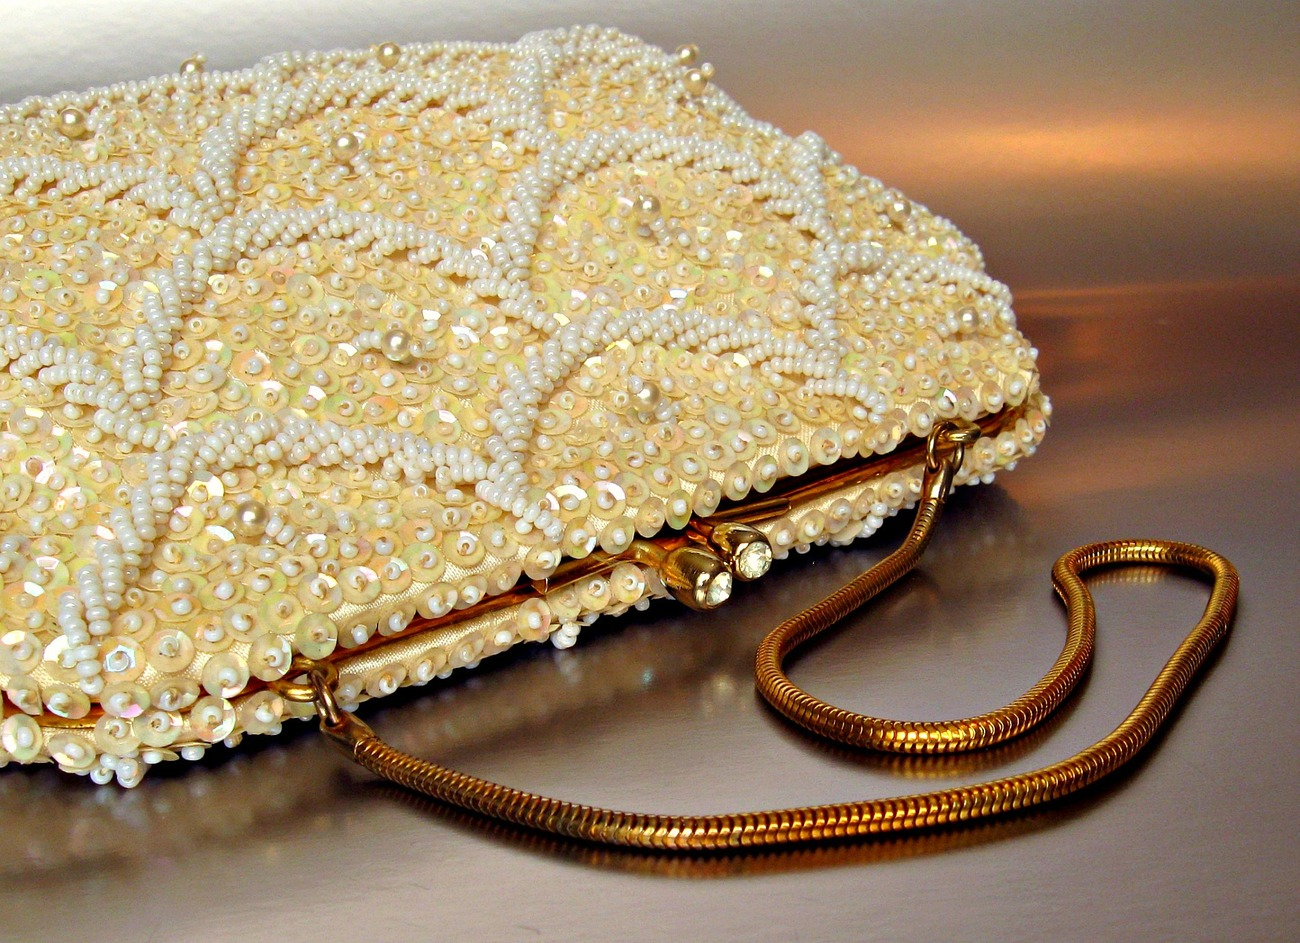 Vintage evening bag - heavy hand beading, sequins. 1950, 1960. Rhinestone clasp.